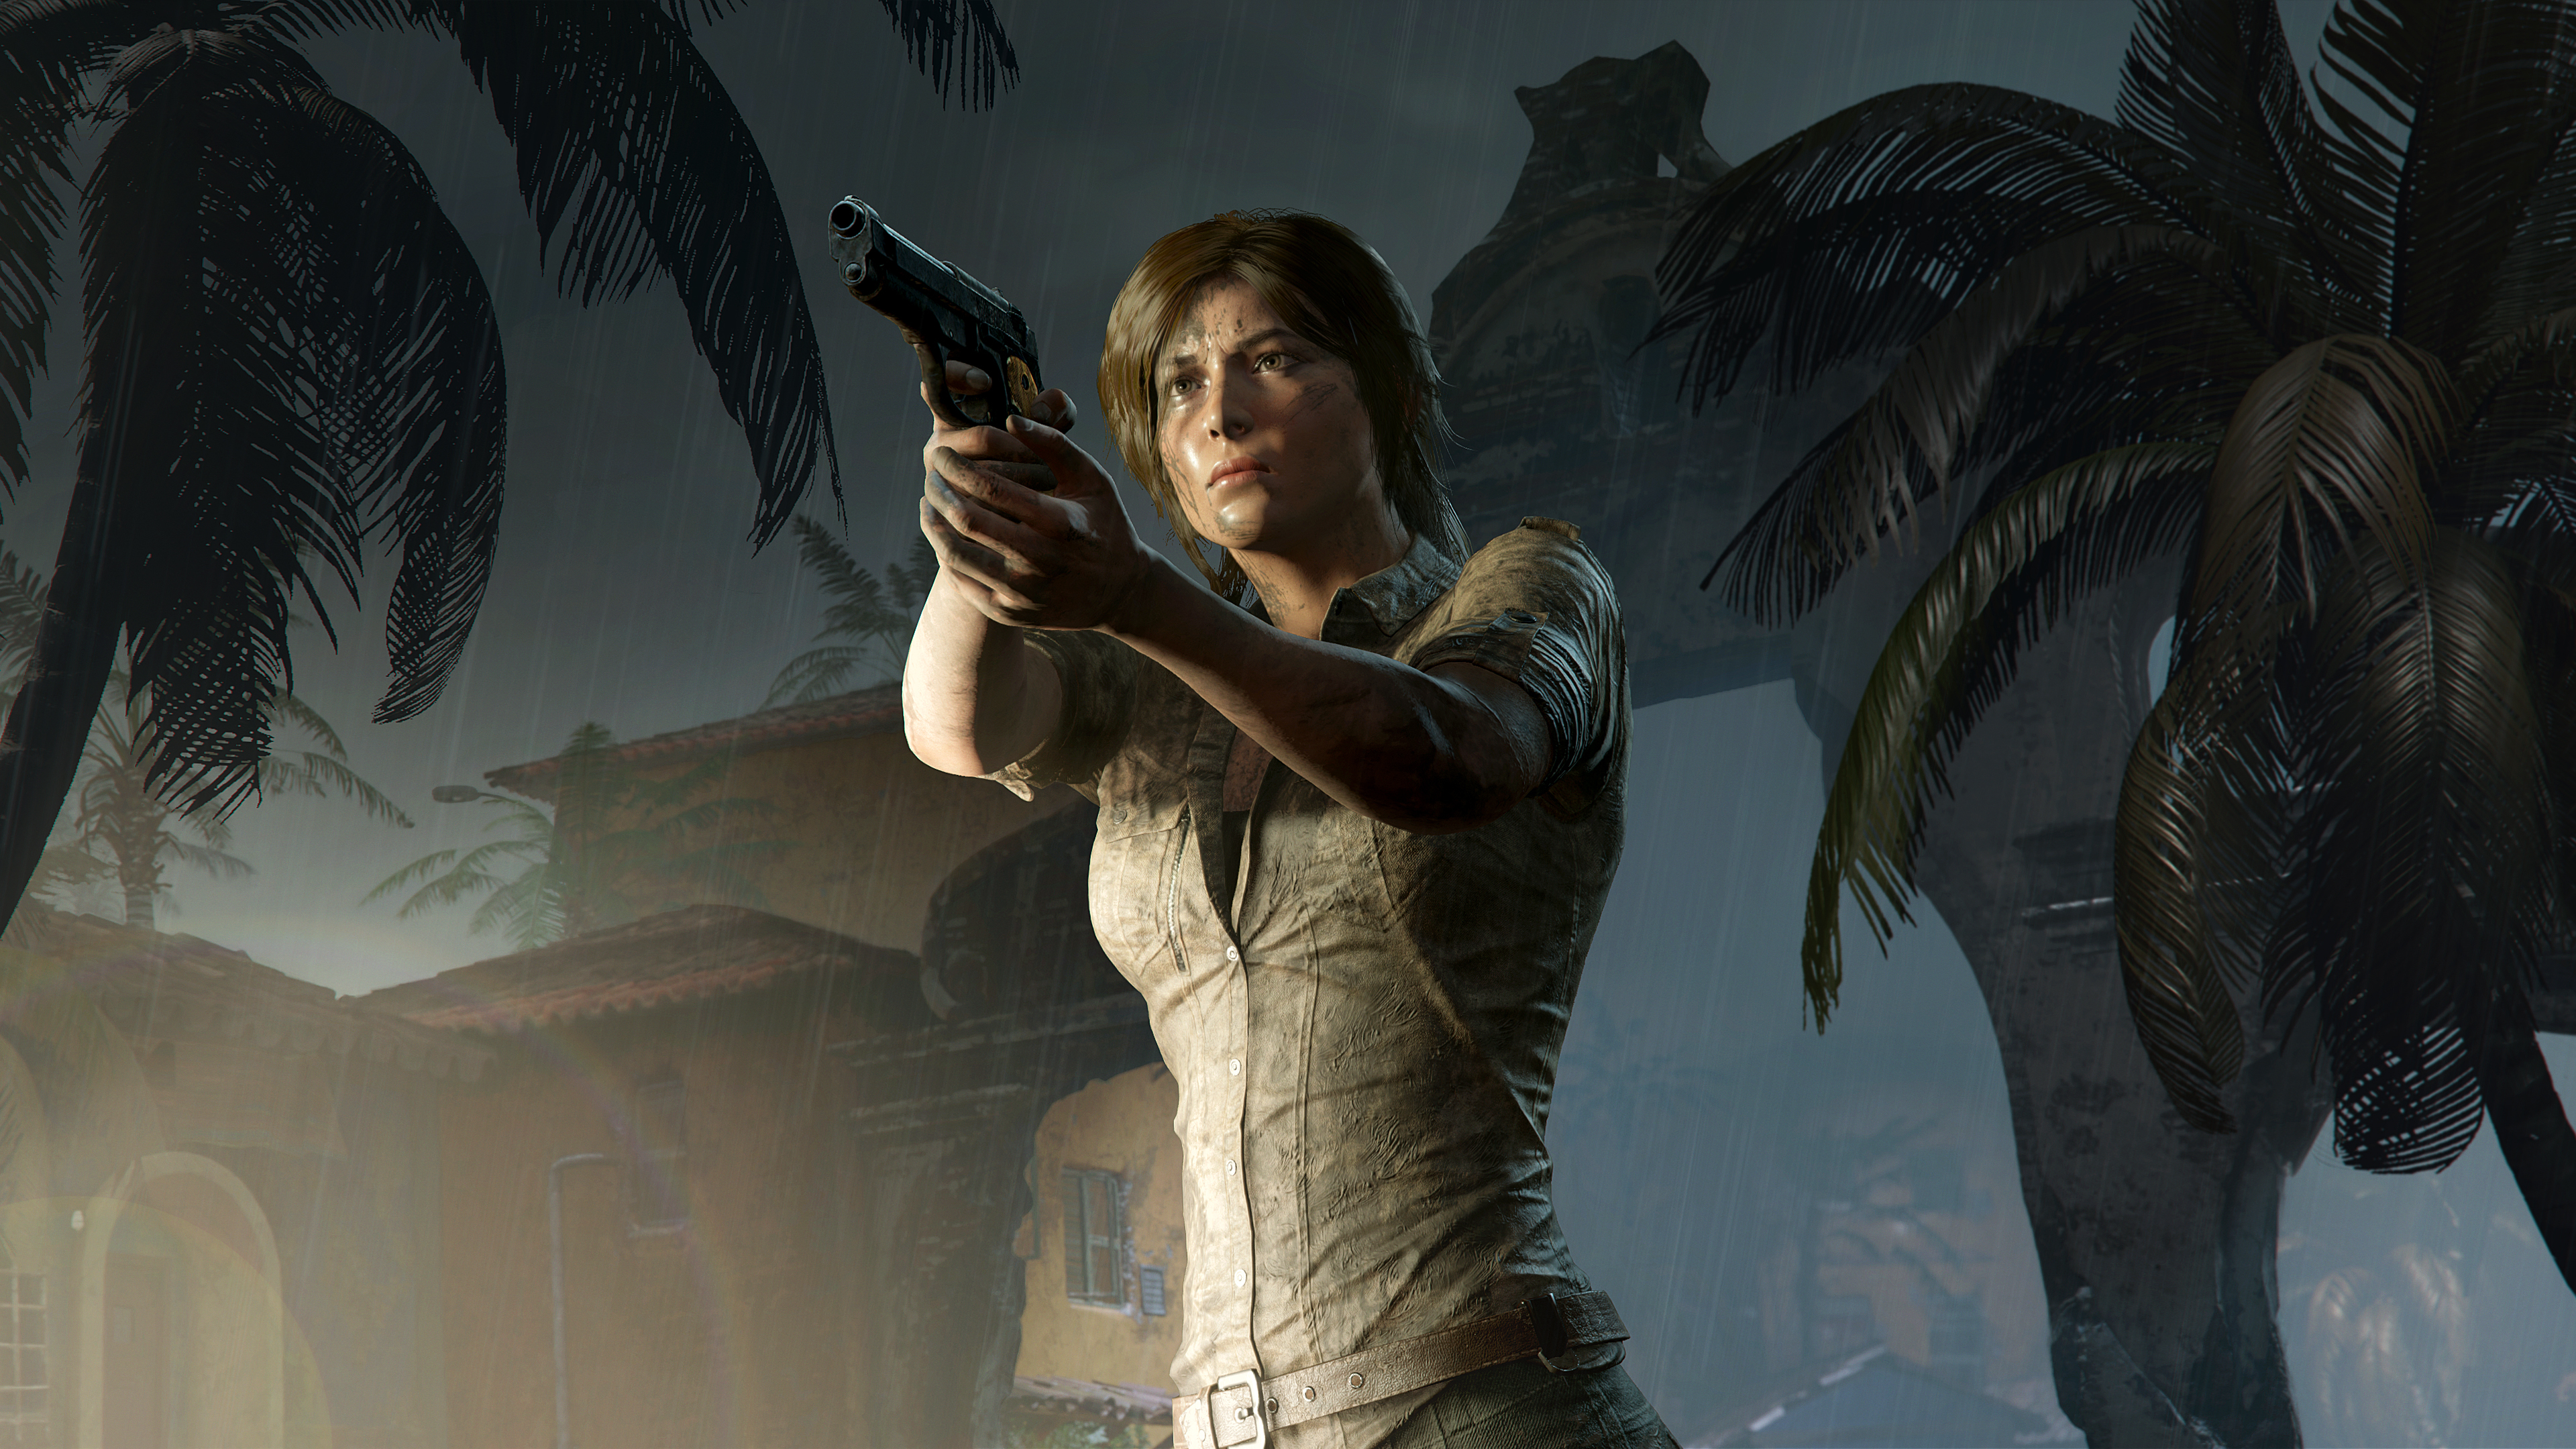 shadow of the tomb raider 4k 1537691693 - Shadow Of The Tomb Raider 4k - tomb raider wallpapers, shadow of the tomb raider wallpapers, lara croft wallpapers, hd-wallpapers, games wallpapers, 4k-wallpapers, 2018 games wallpapers